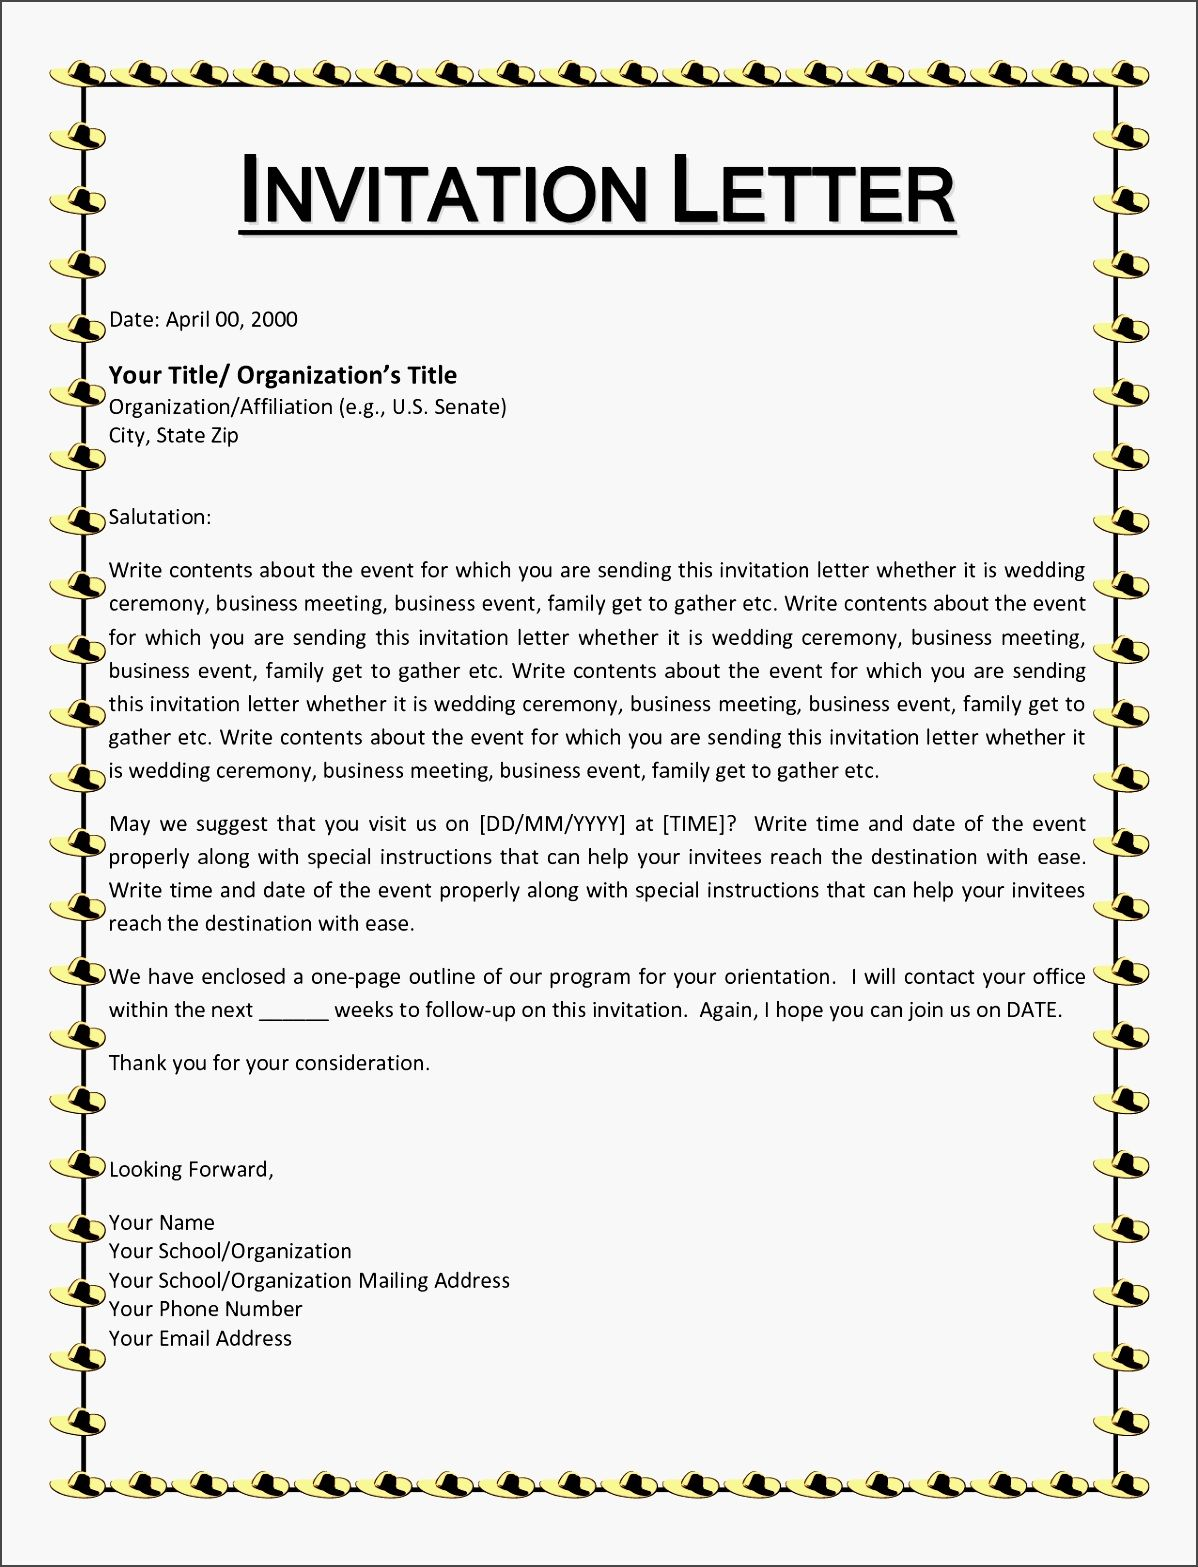 Invitation letter informal saevk beautiful wedding invitation letter invitation letter informal saevk beautiful wedding invitation letter informal wedding invitation letter stopboris Images